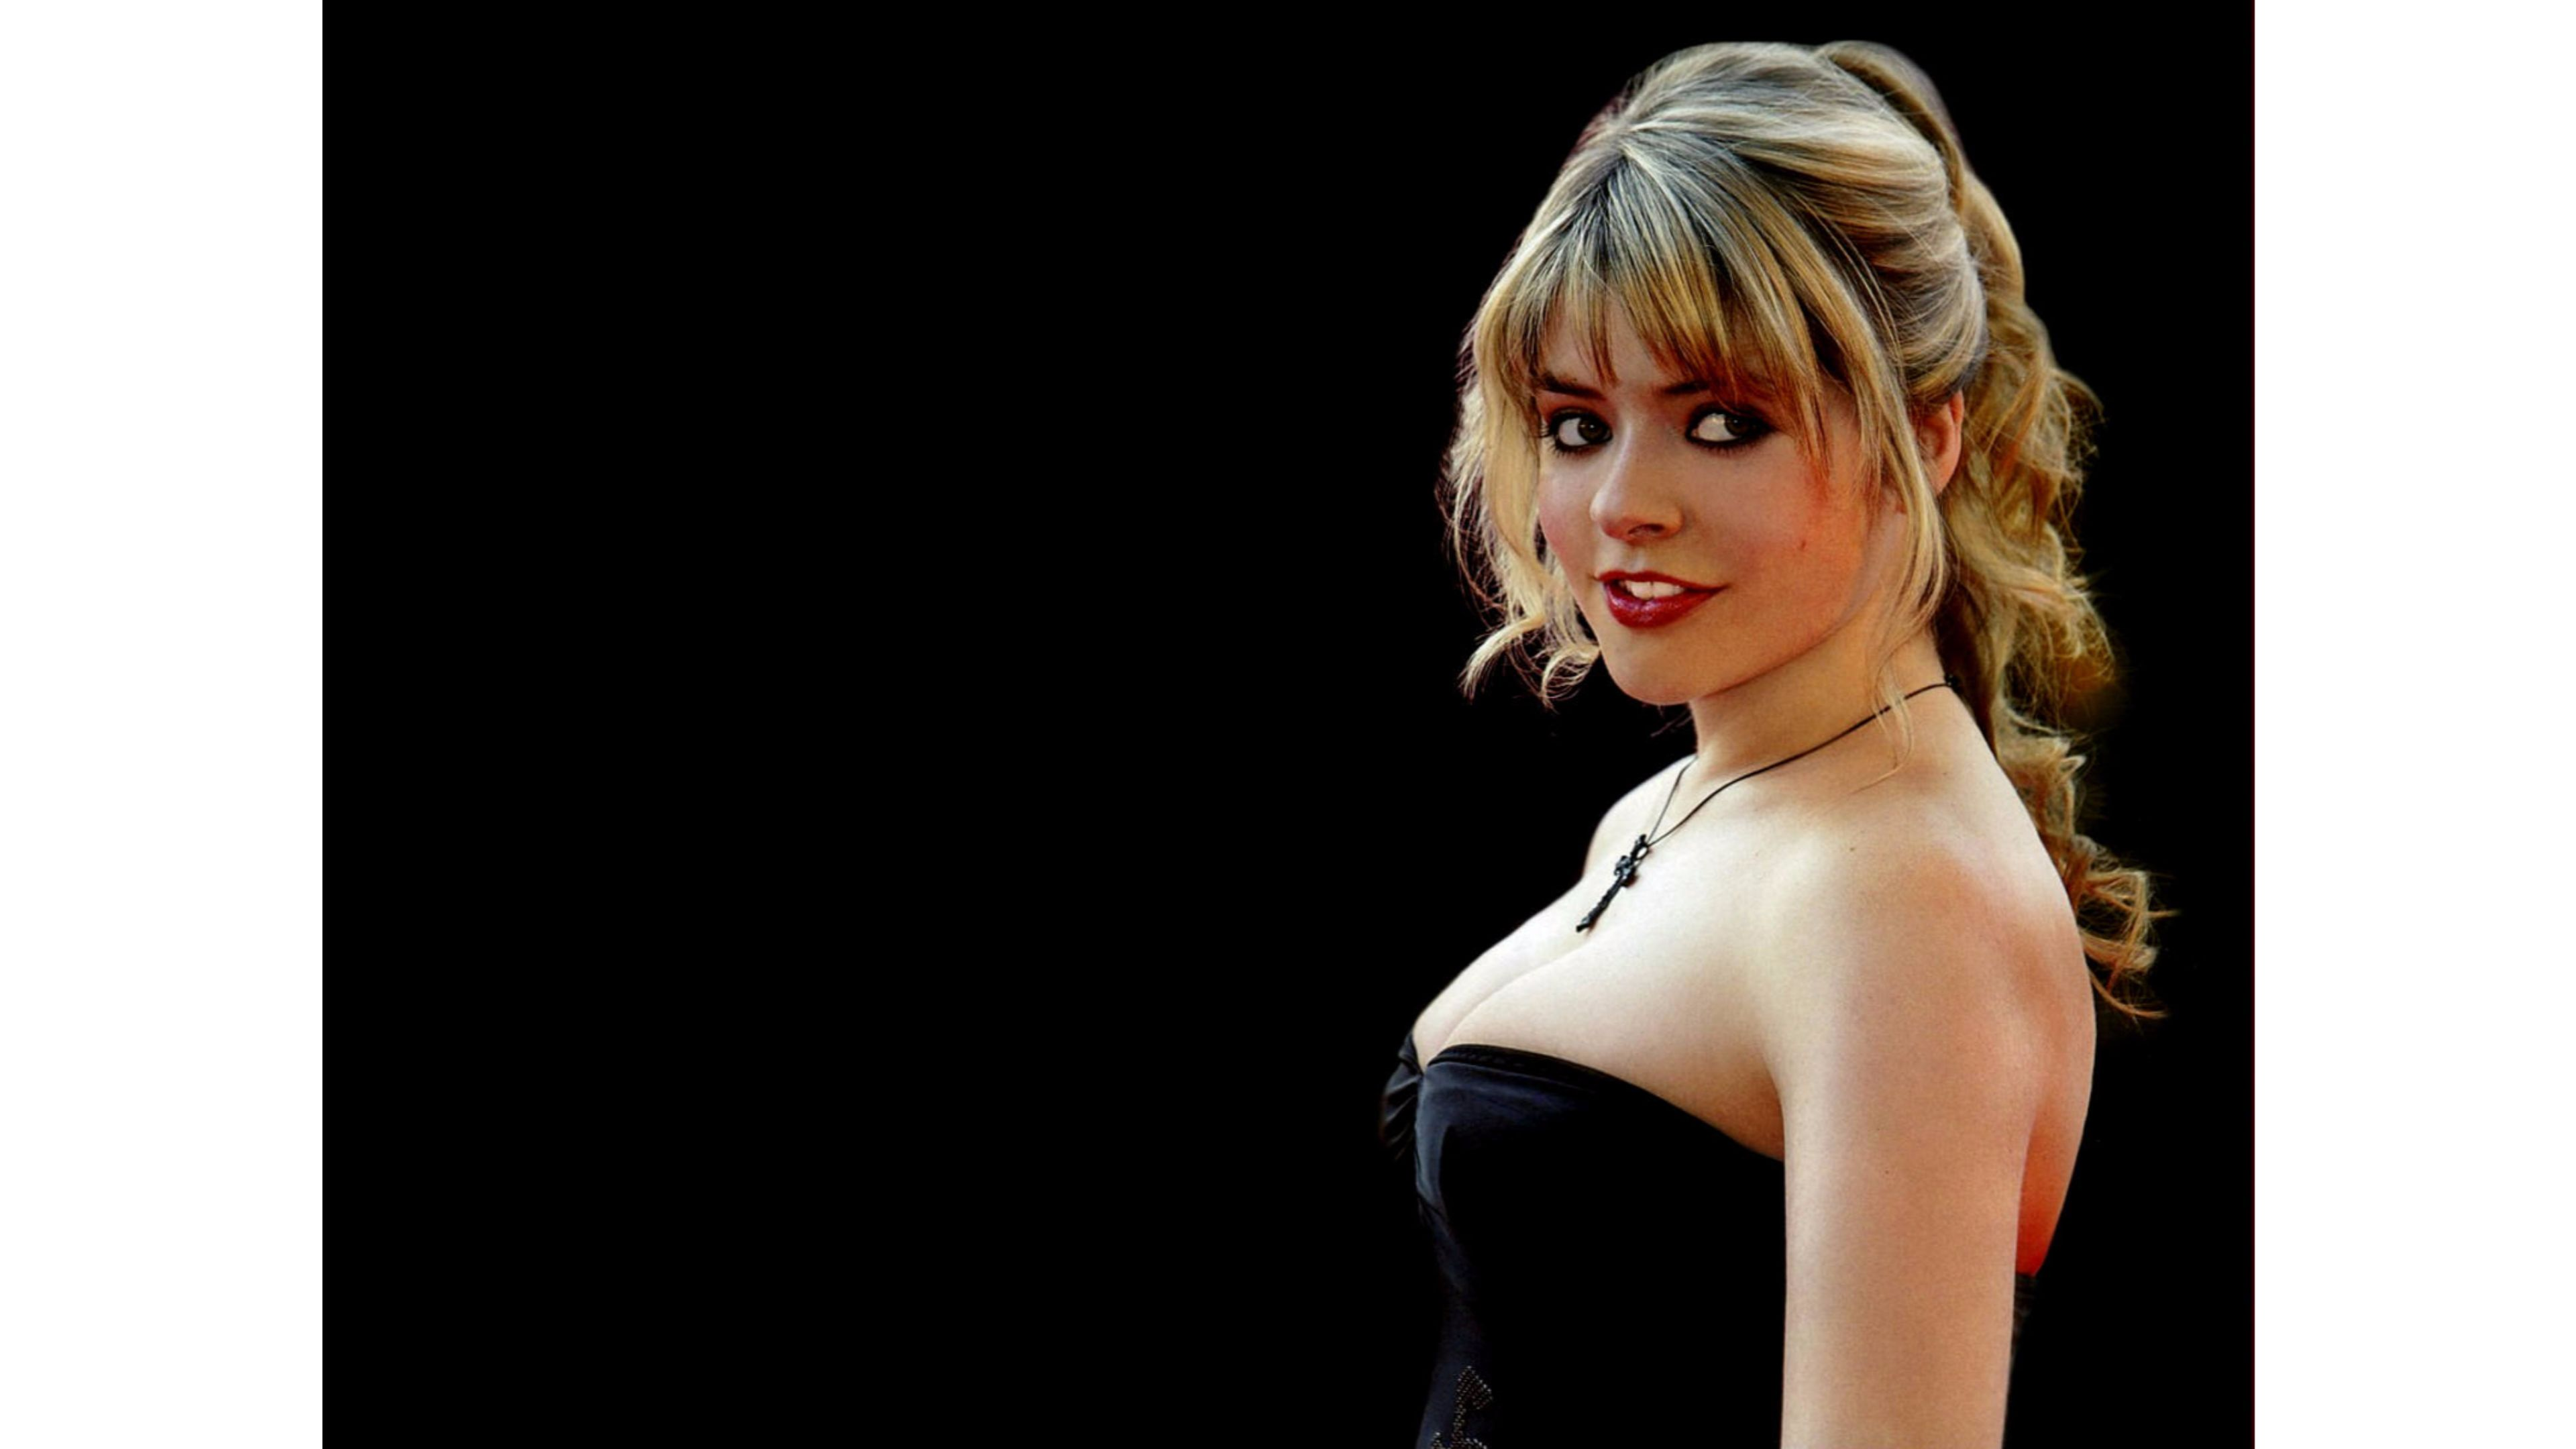 3840x2160 - Holly Willoughby Wallpapers 10